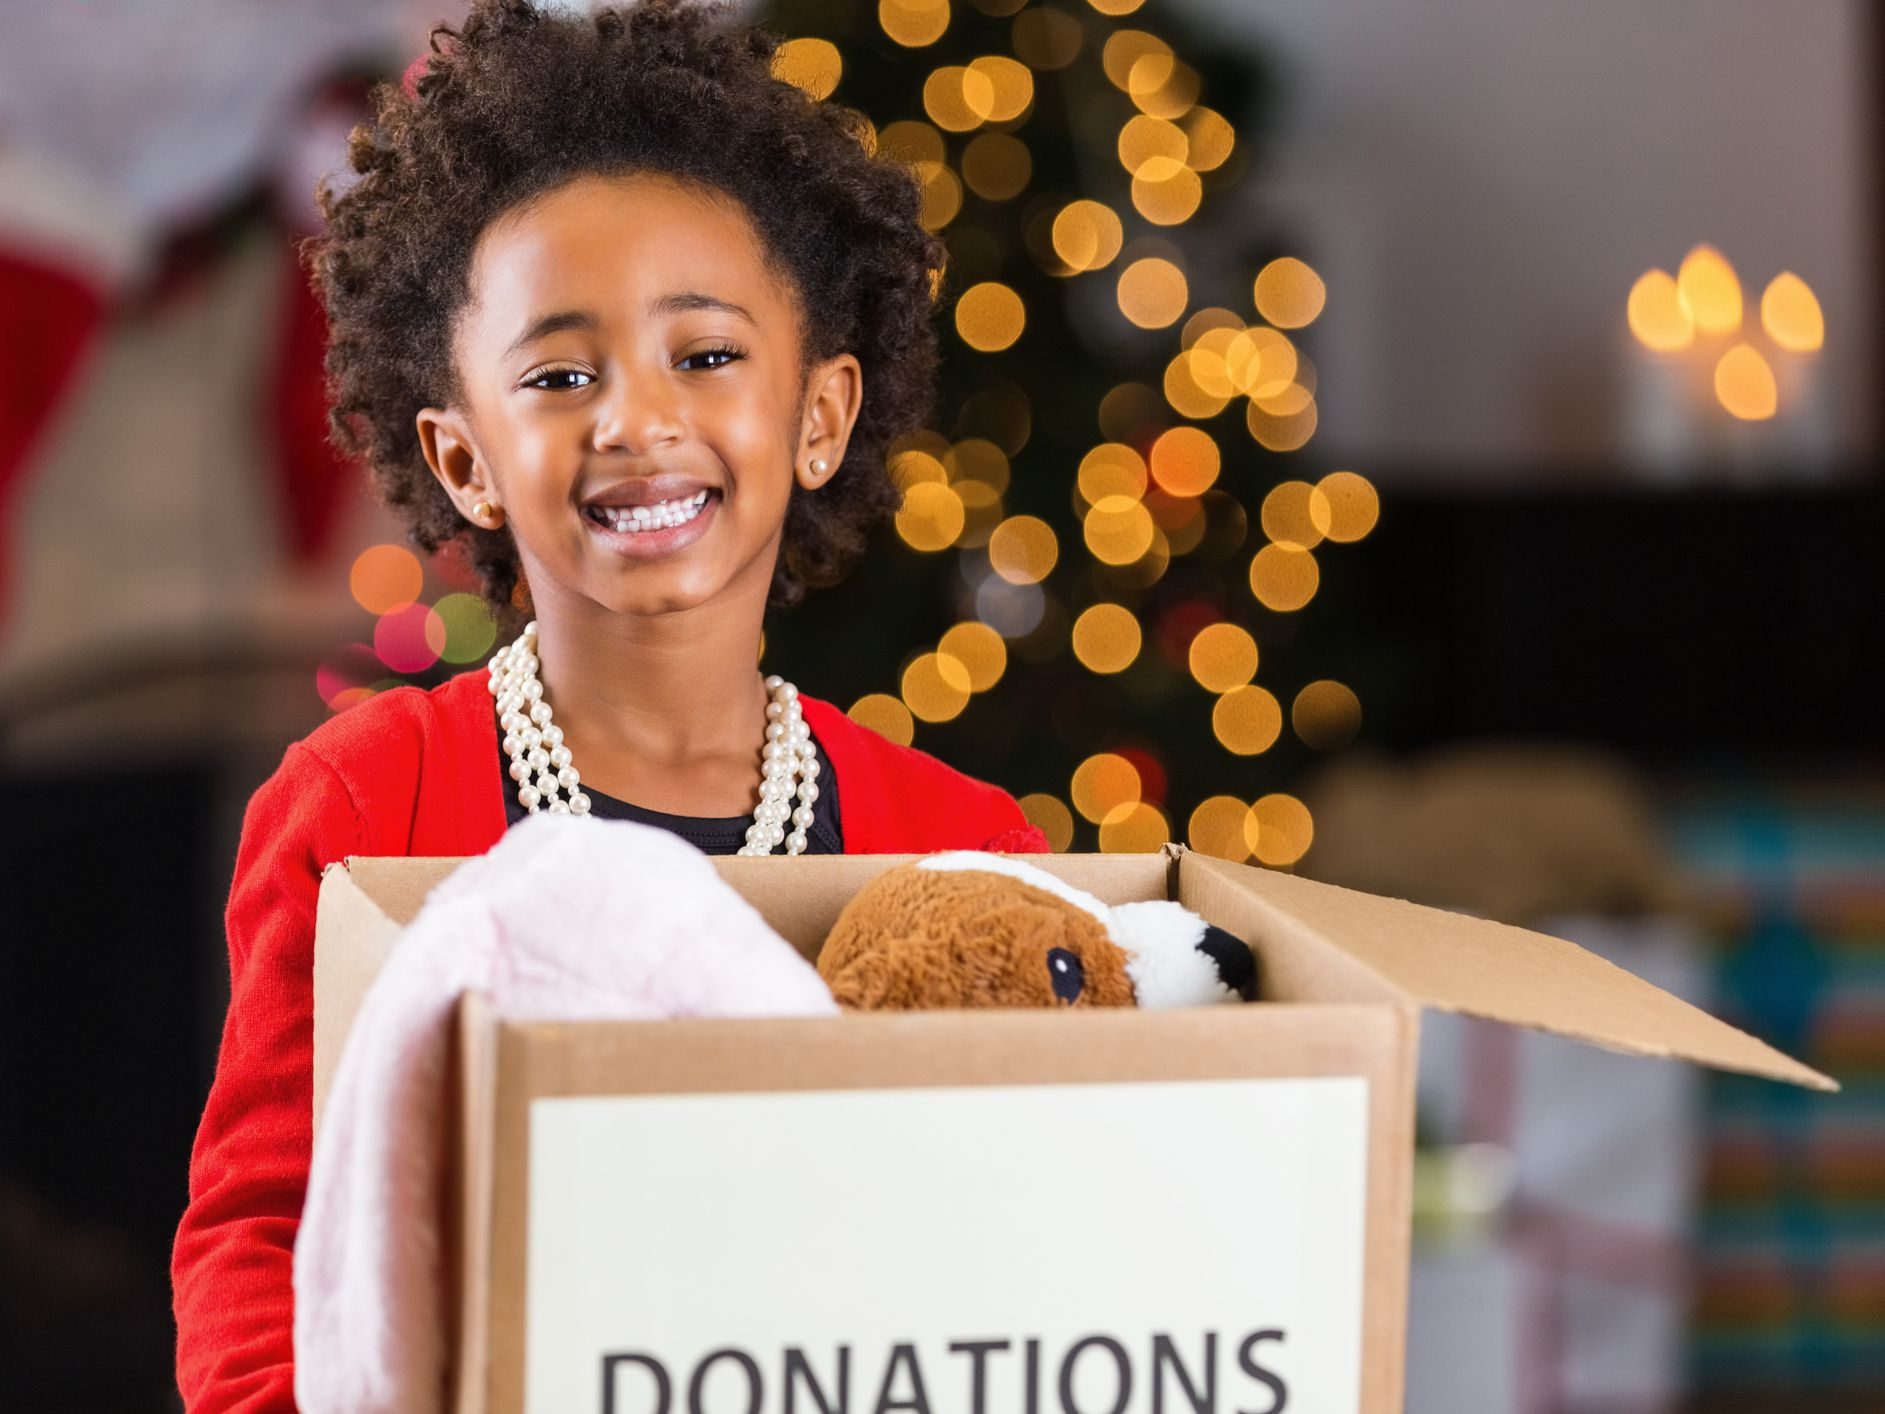 7 Random Acts of Kindness for Kids